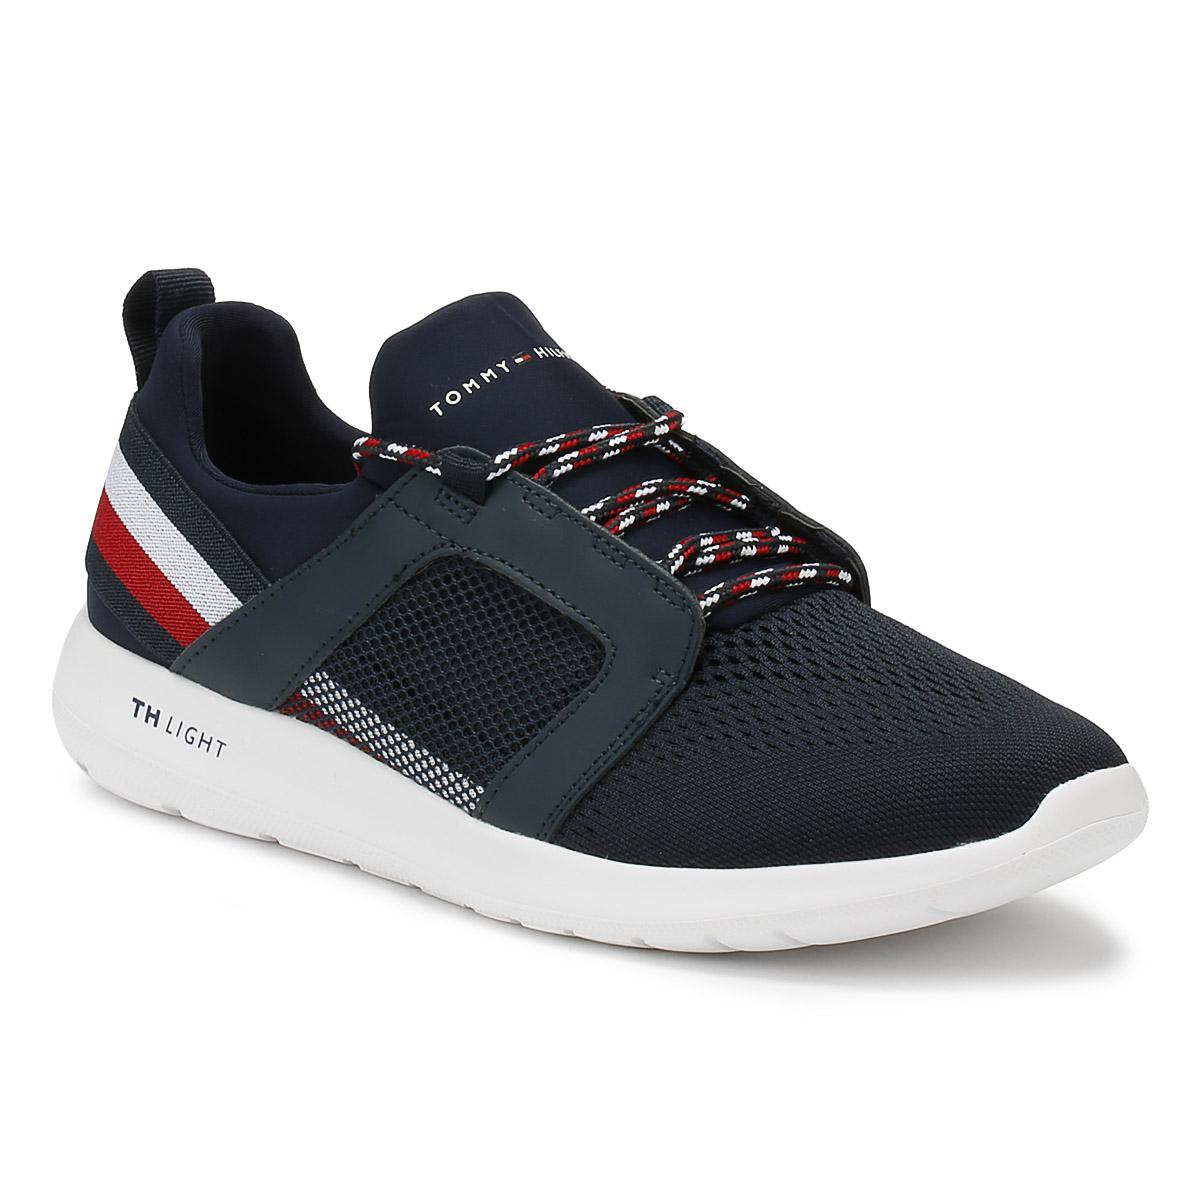 Mens Technical Material Mix Low-Top Sneakers, Midnight Blue Tommy Hilfiger